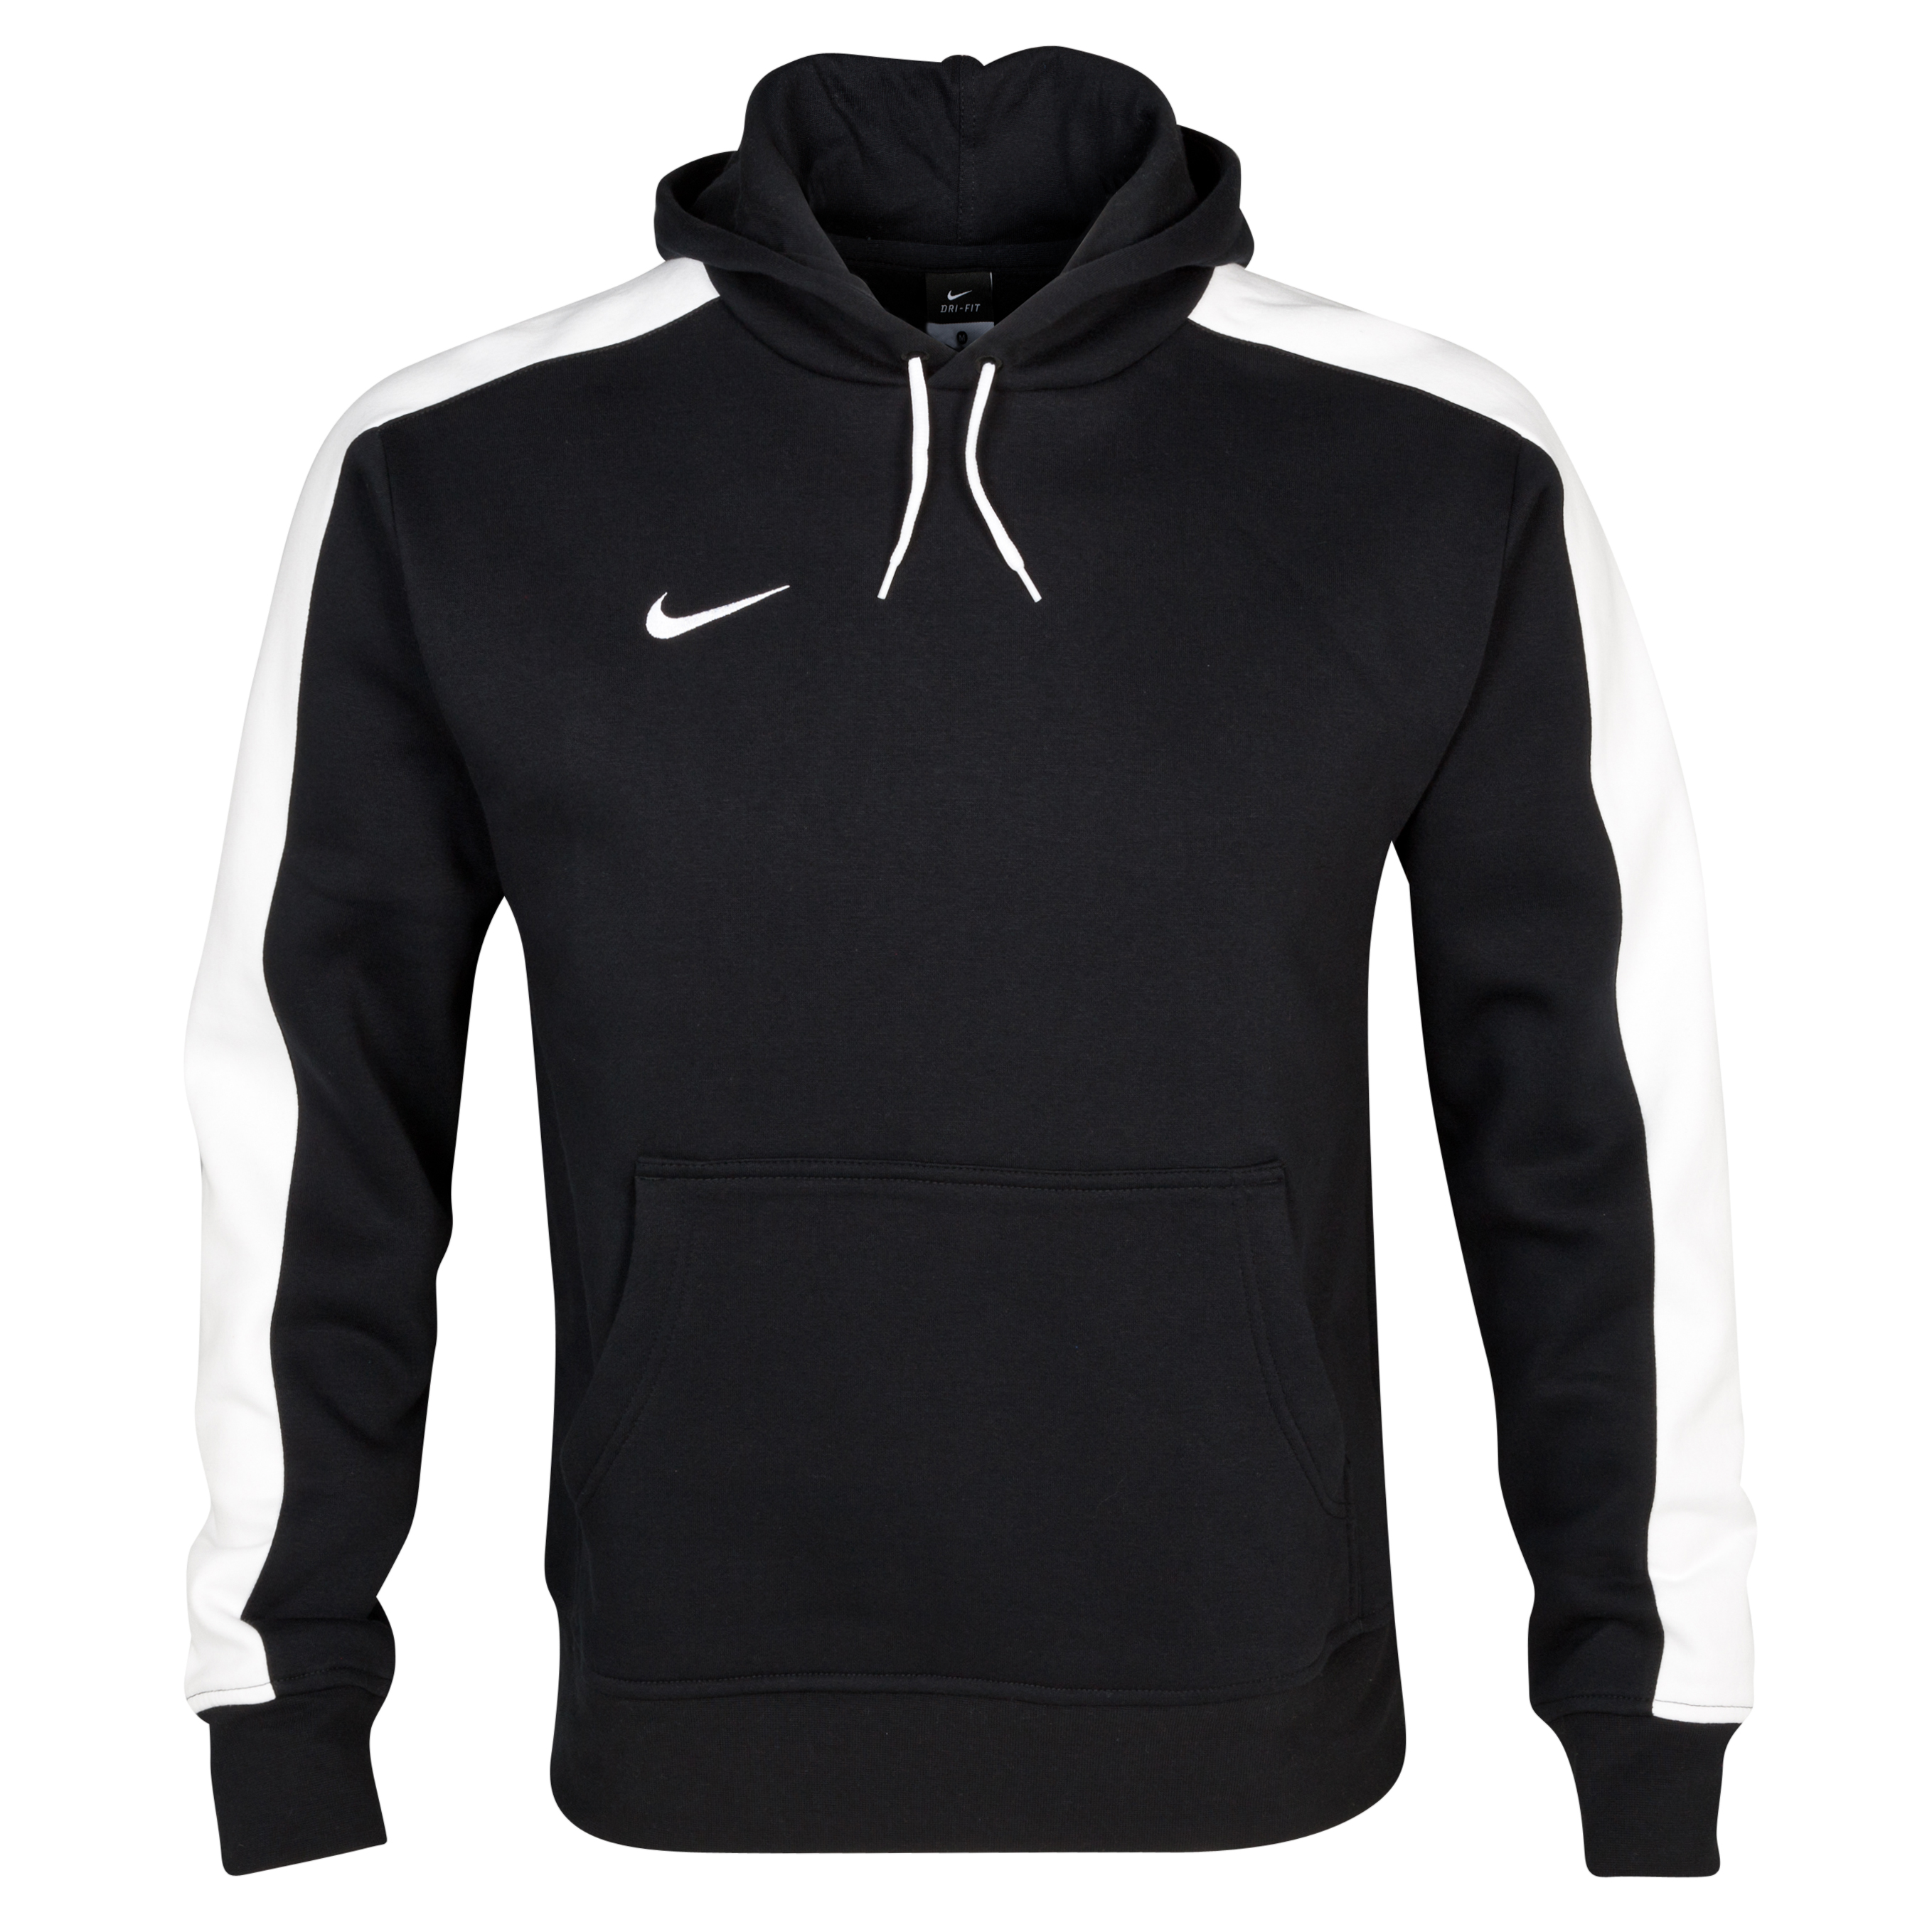 Nike Team Fleece Hoody - Black/White/White